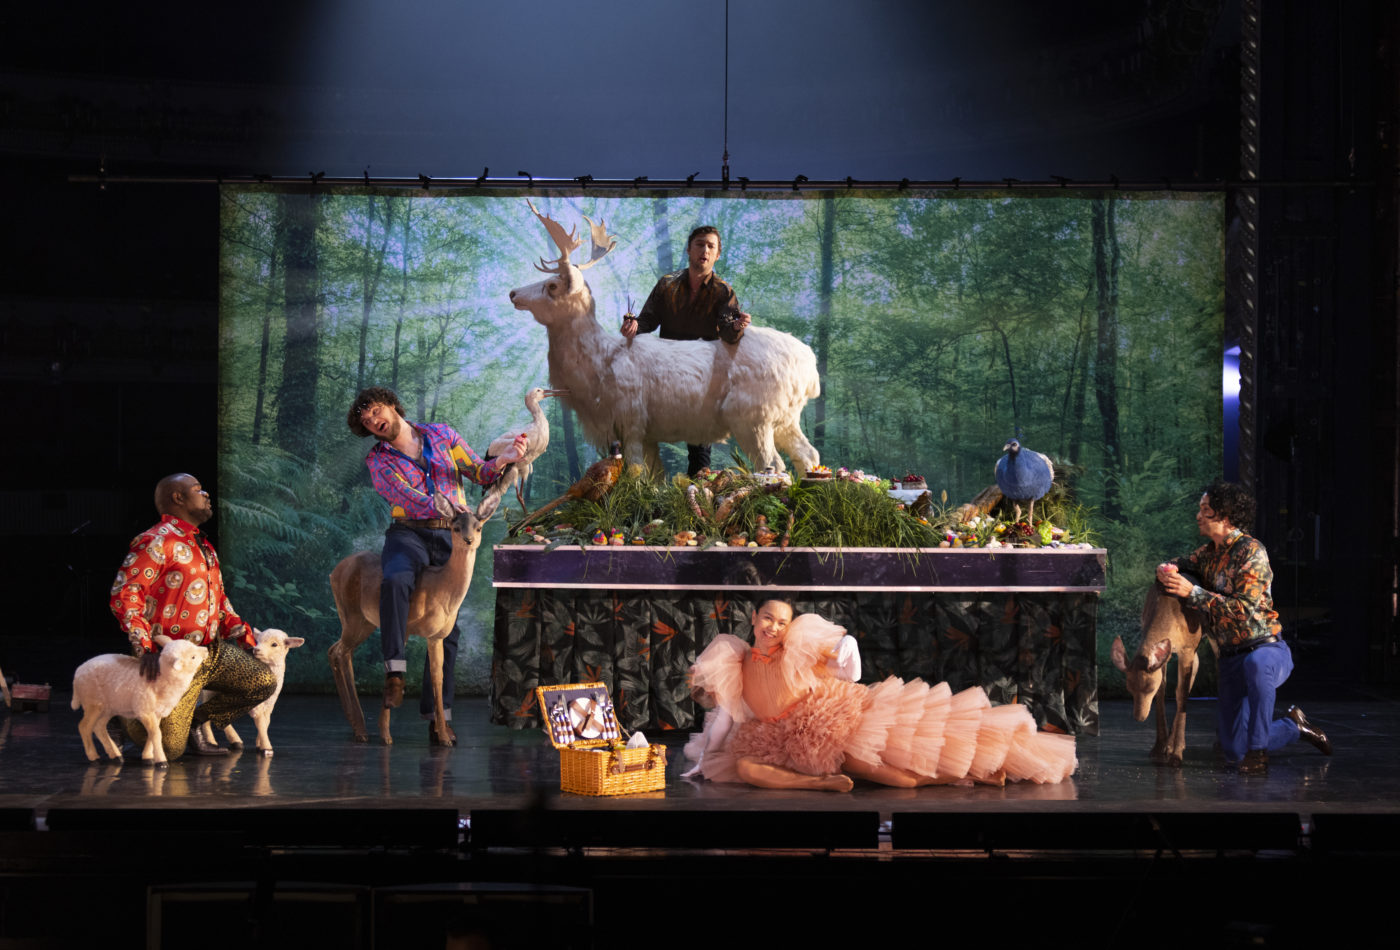 Artists Blaise Malaba, Egor Zhuravskii, Dominic Sedgwick, Jonadette Carpio and Filipe Manu in the JPYAP's Production of The Seven Deadly Sins. They wear bright, extravagant outfits and are sitting on and around life-sized fake lambs and deer, in front of an image of a forest. (c) ROH Photography by Ellie Kurttz